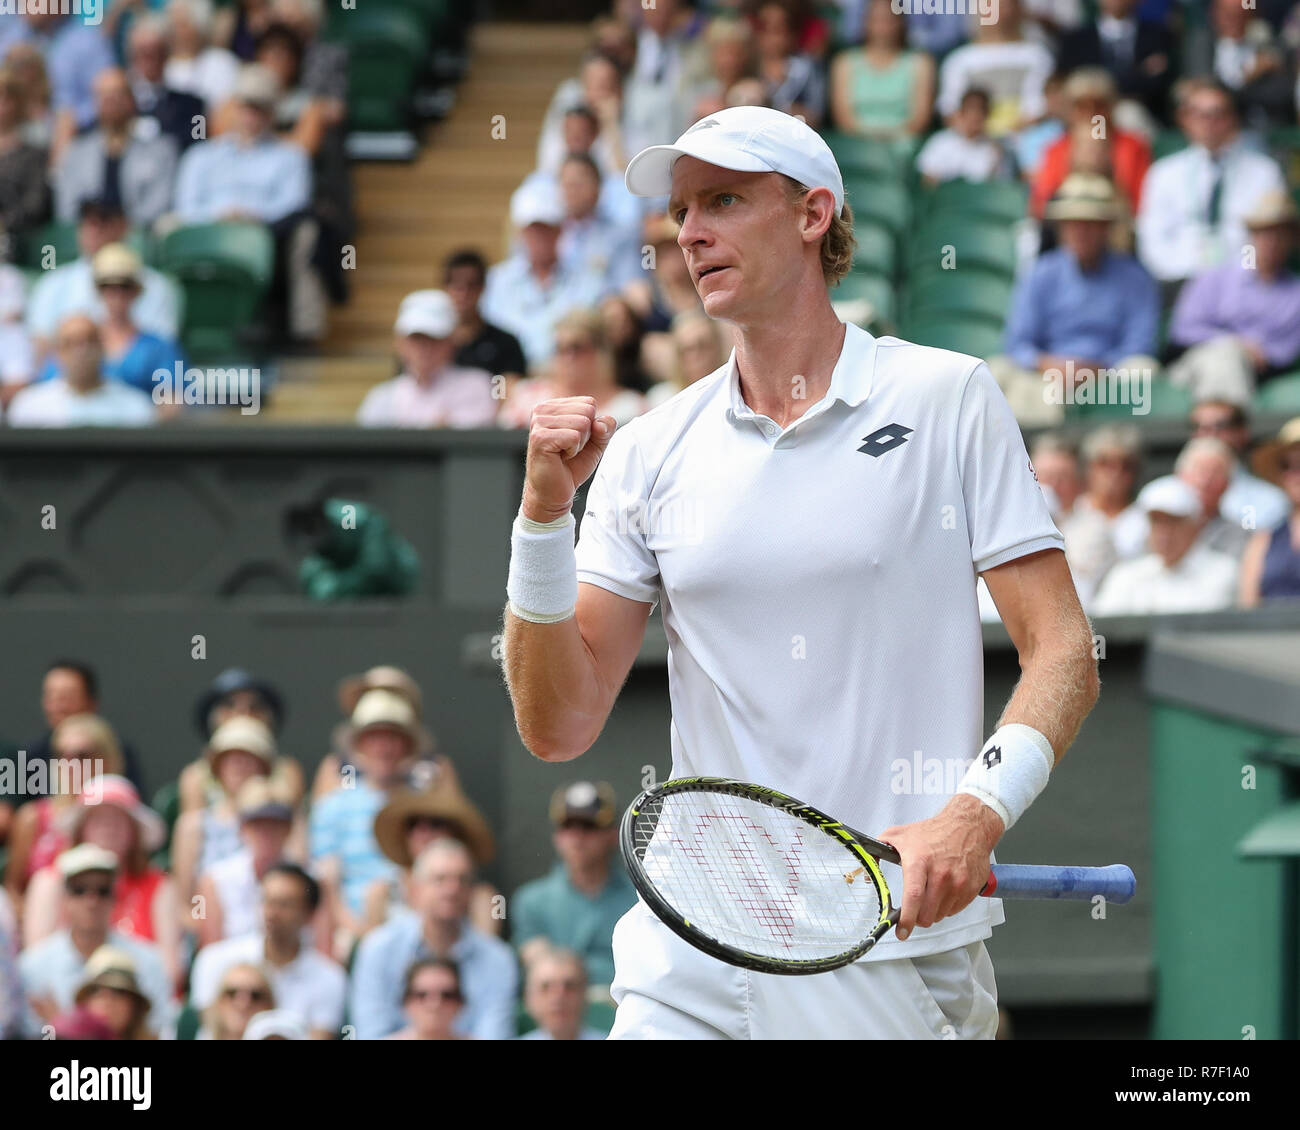 South African player Kevin Anderson celebrates  at Wimbledon, London, Great Britain, United Kingdom. - Stock Image